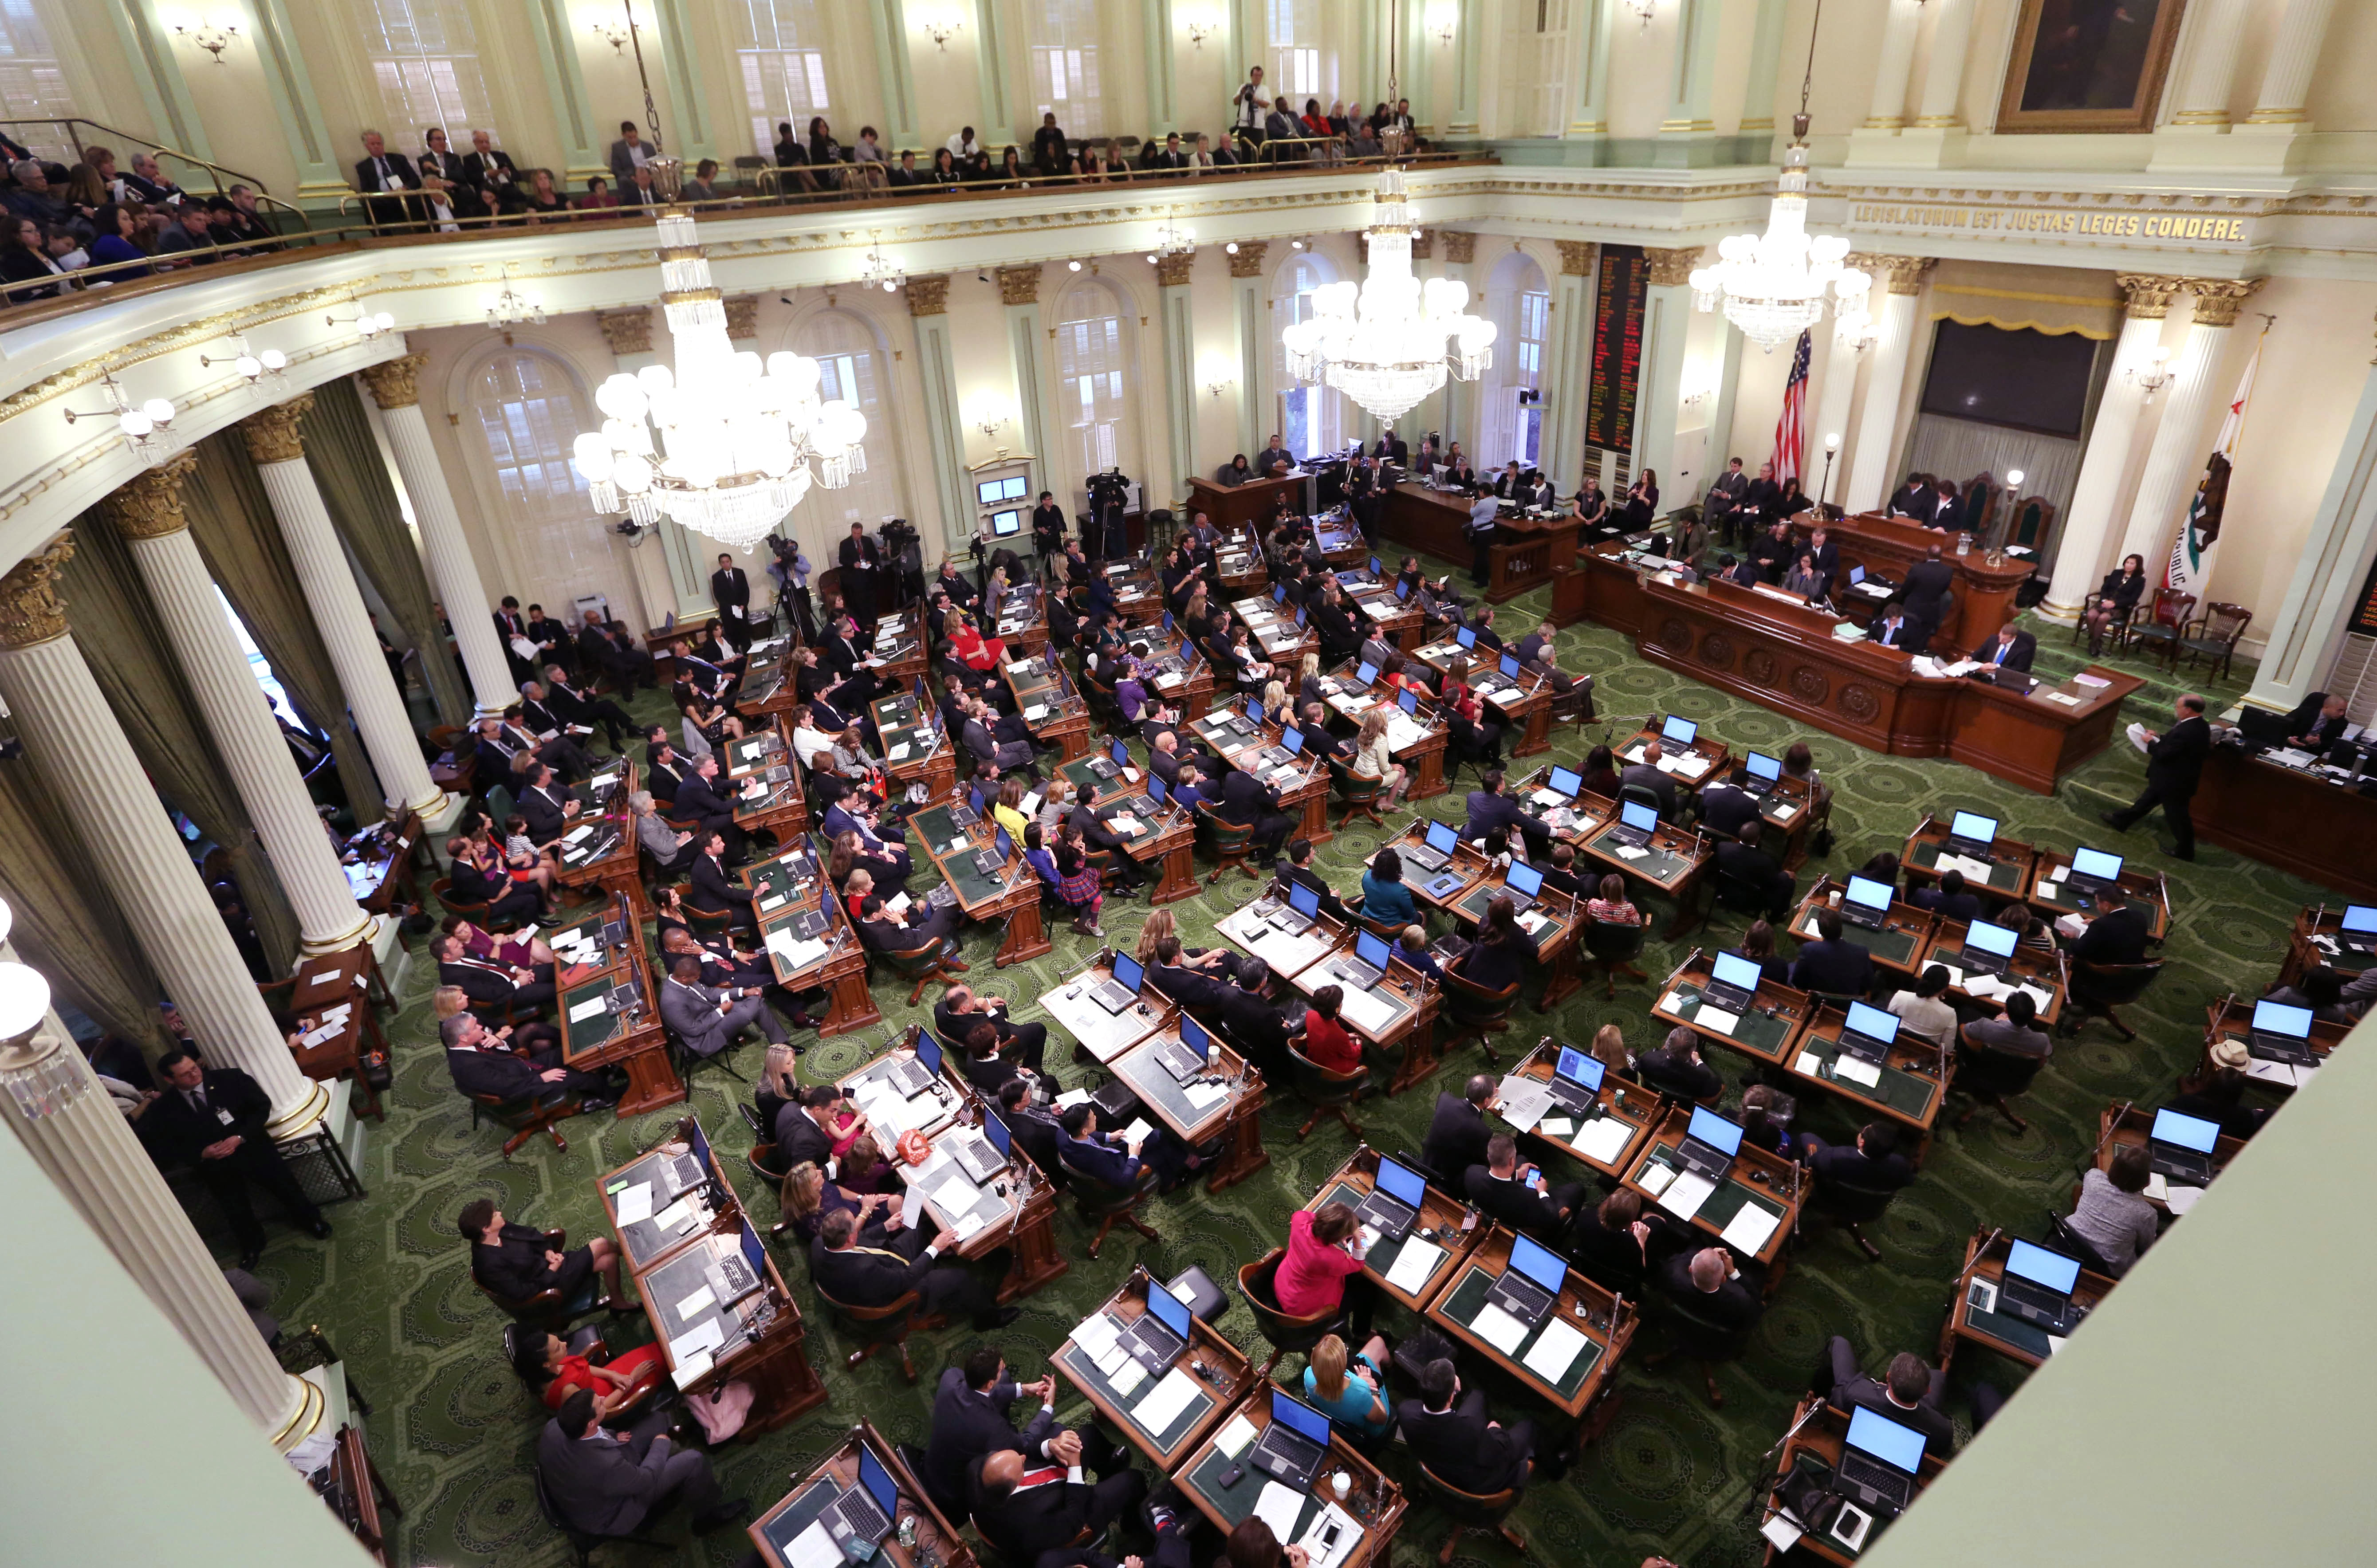 The california state assembly met for an organizational session where